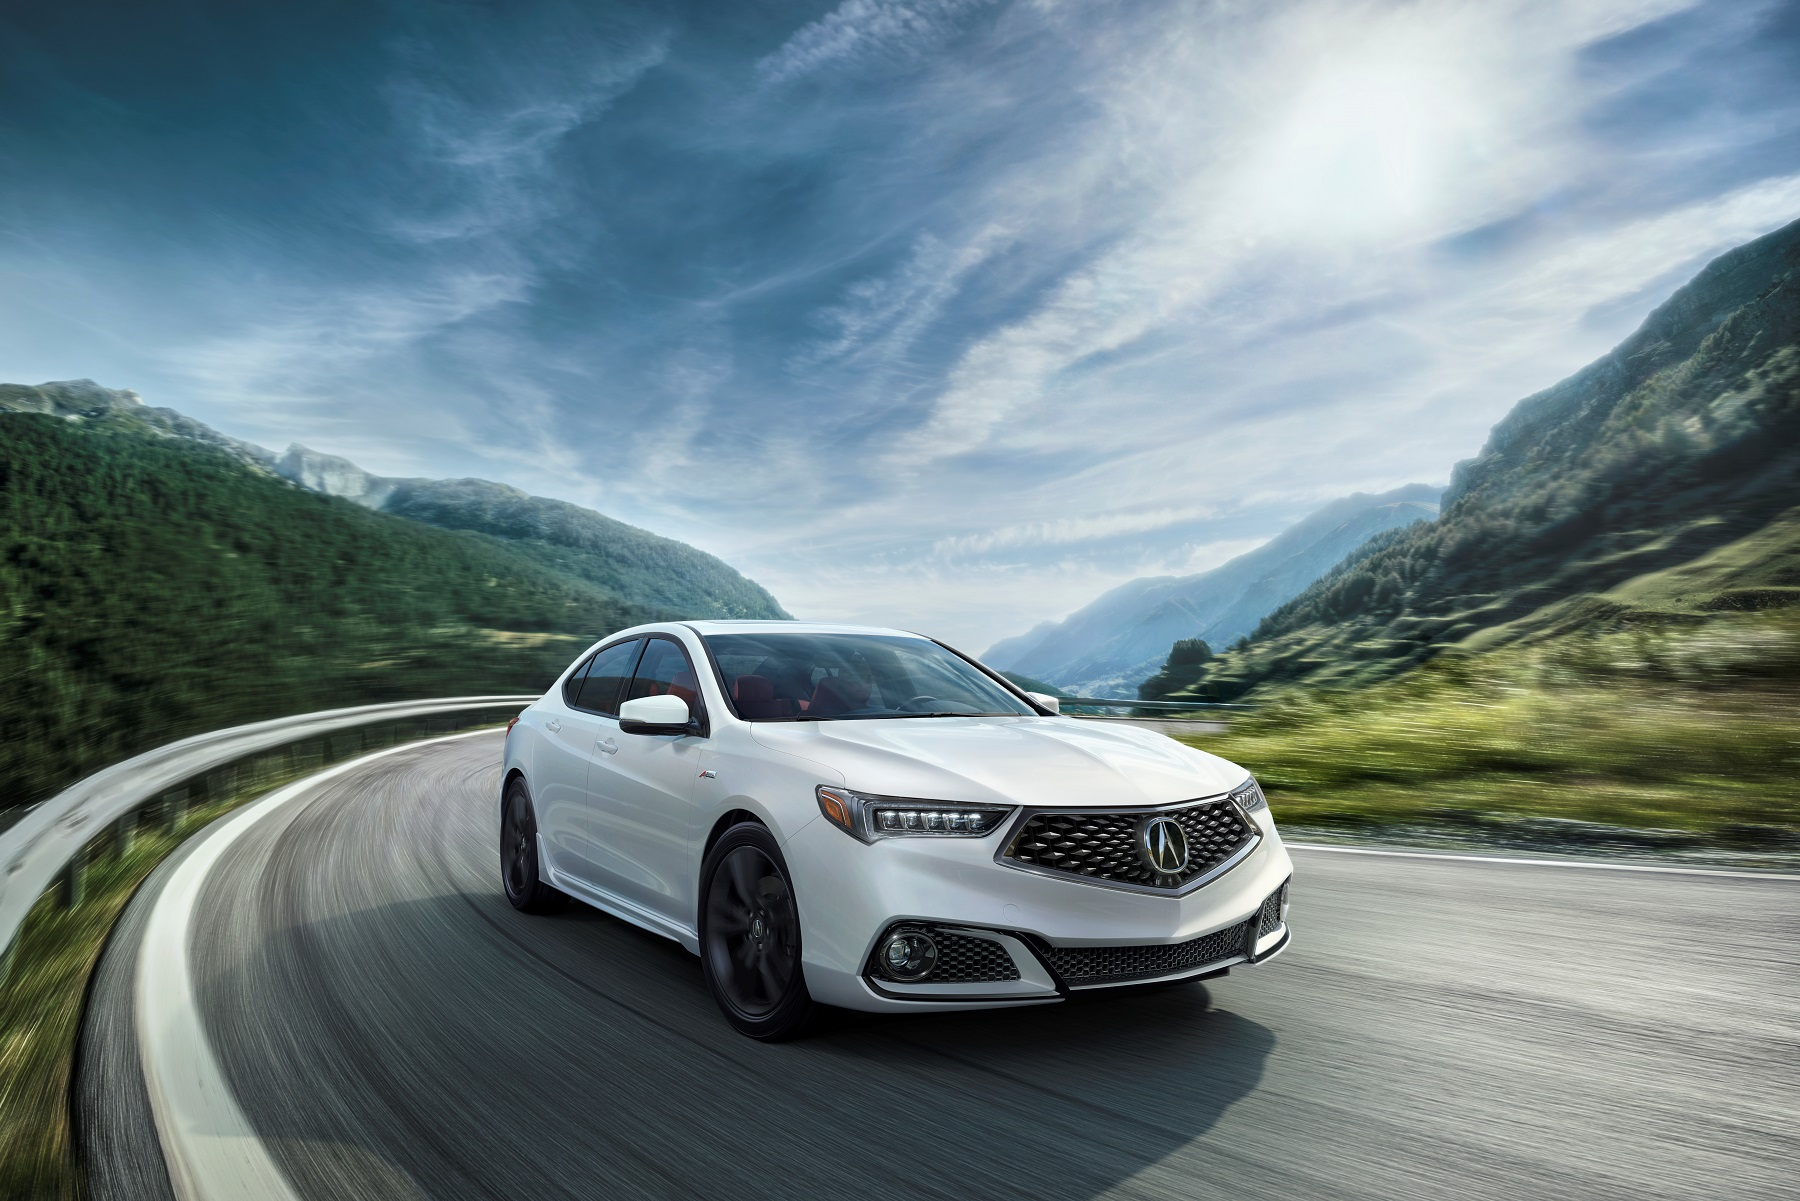 Manufacturer photo: Acura significantly refreshes its midsize TLX performance luxury sedan for 2018, offering more standard features and a sporty new A-Spec choice for V-6 models